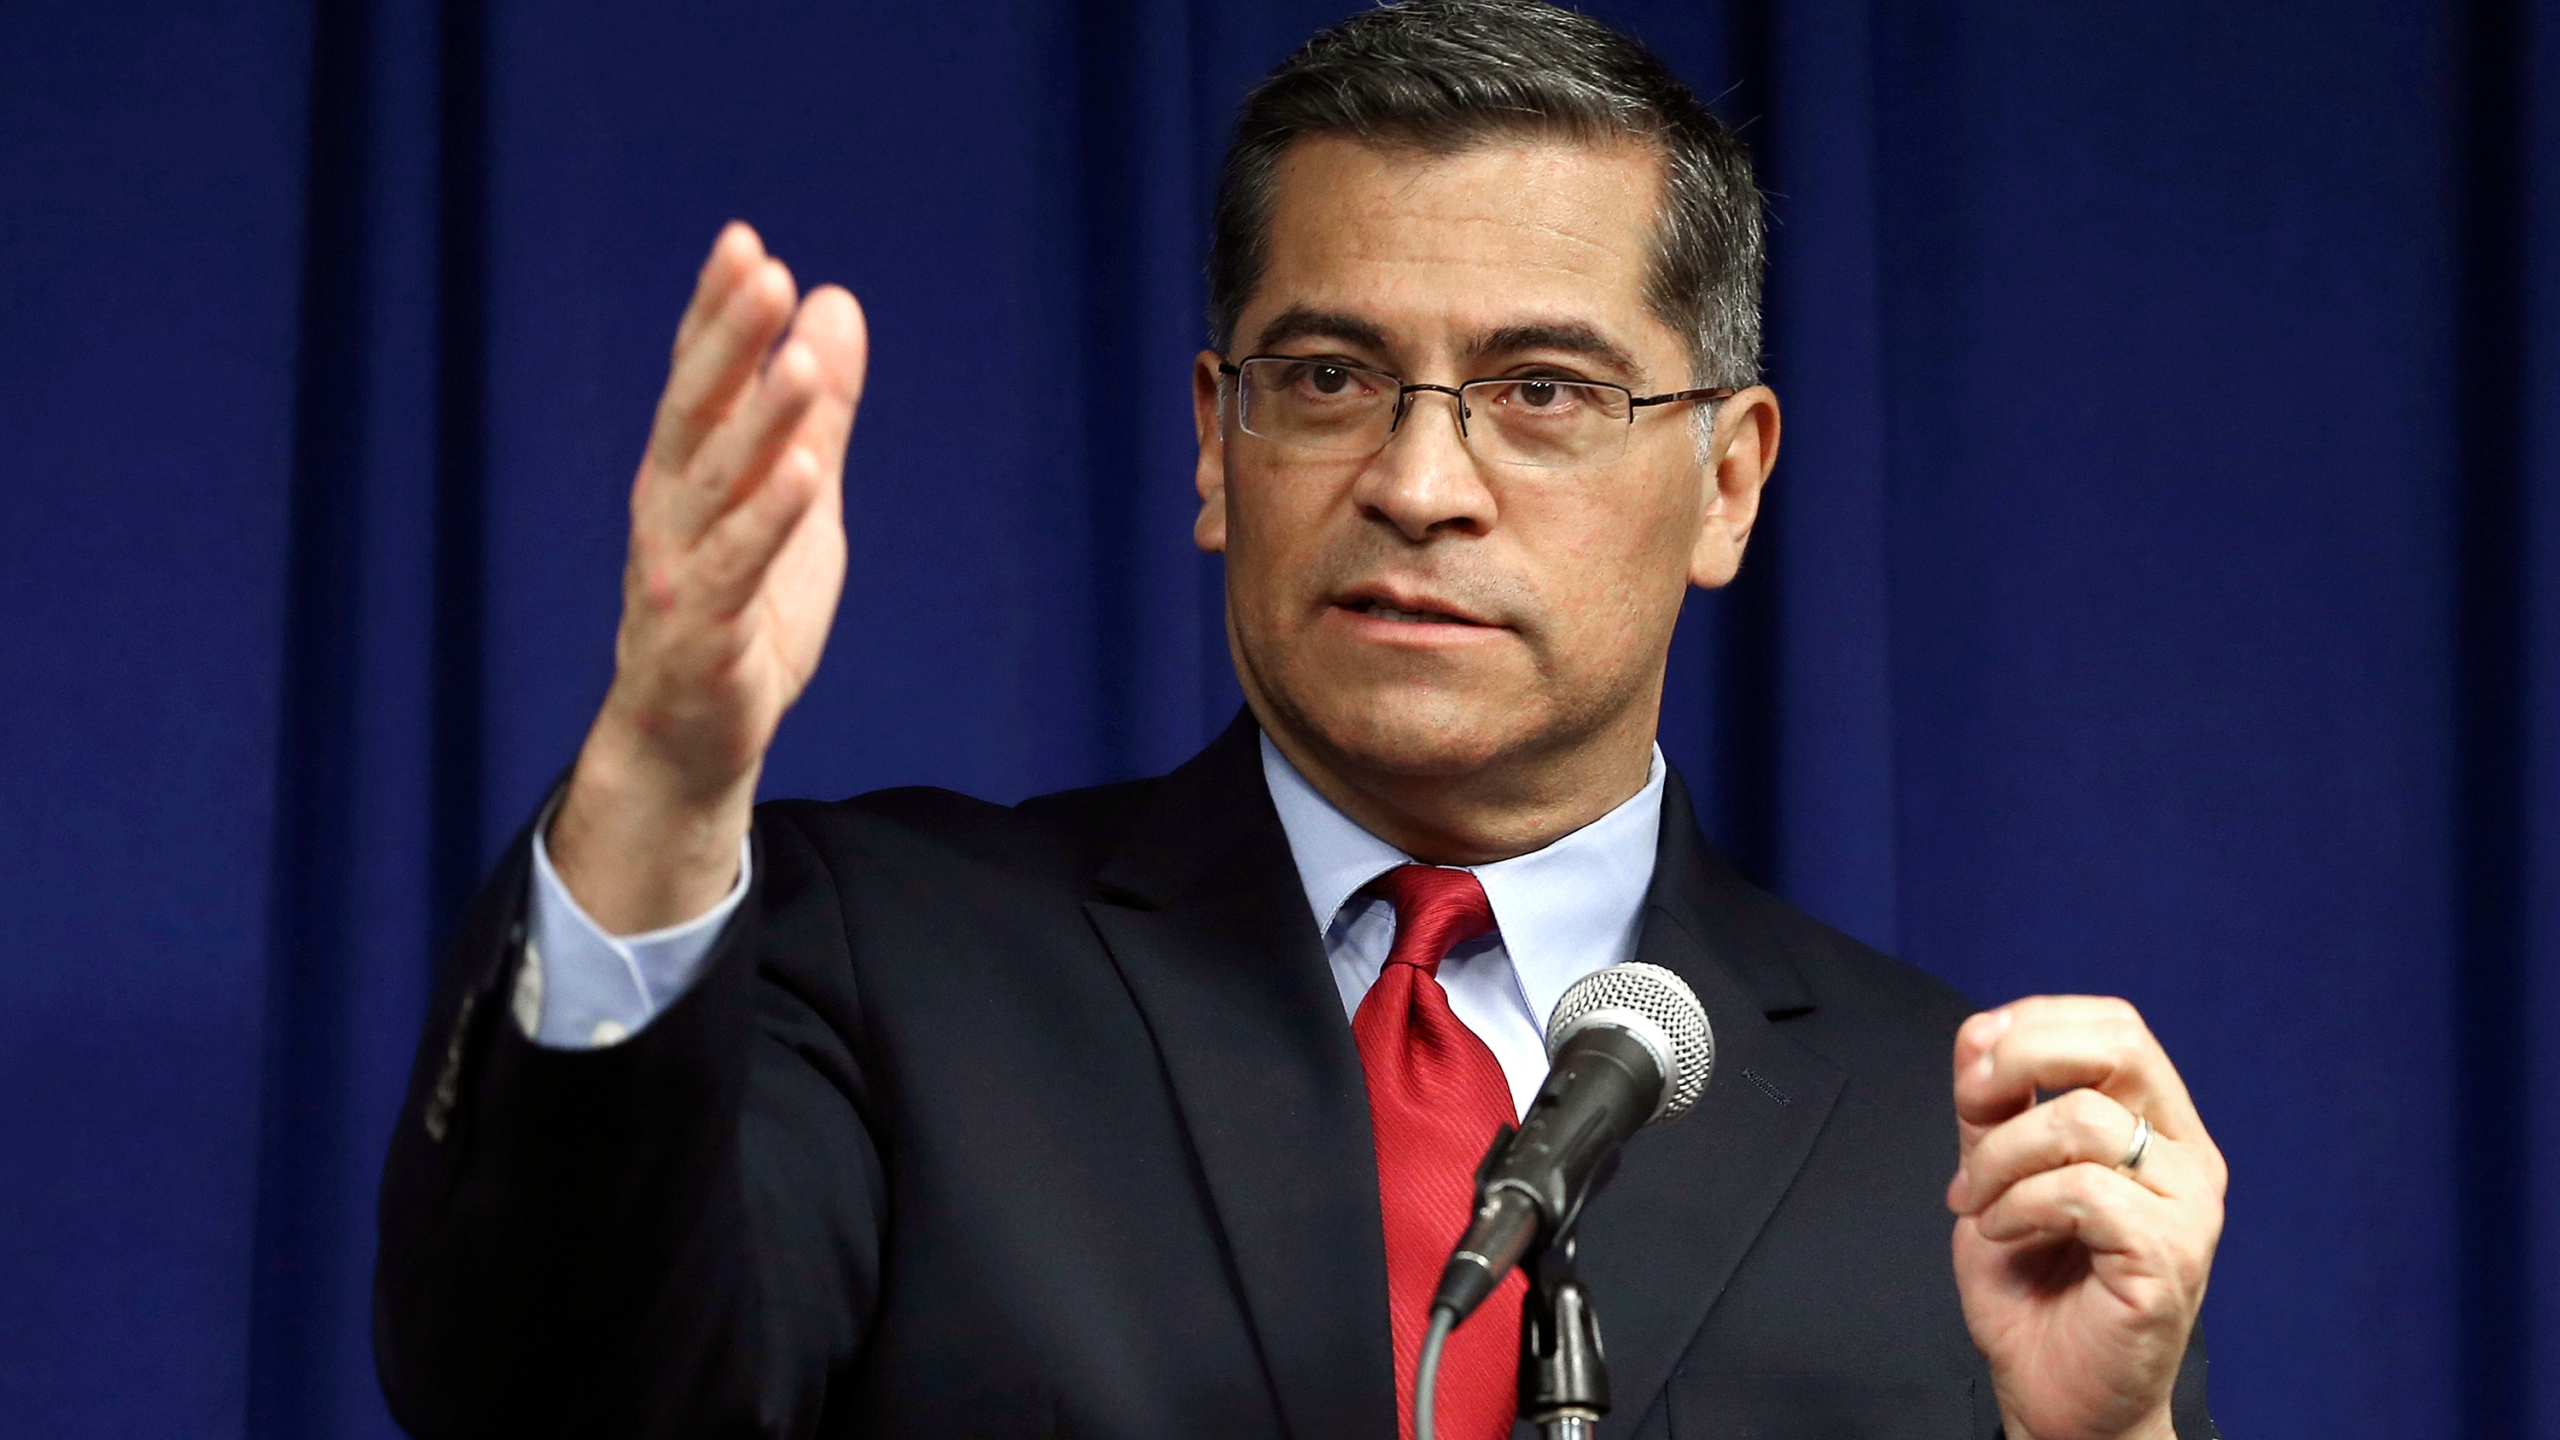 In this March 5, 2019, file photo, California Attorney General Xavier Becerra speaks during a news conference in Sacramento, Calif. (Rich Pedroncelli/AP Photo)